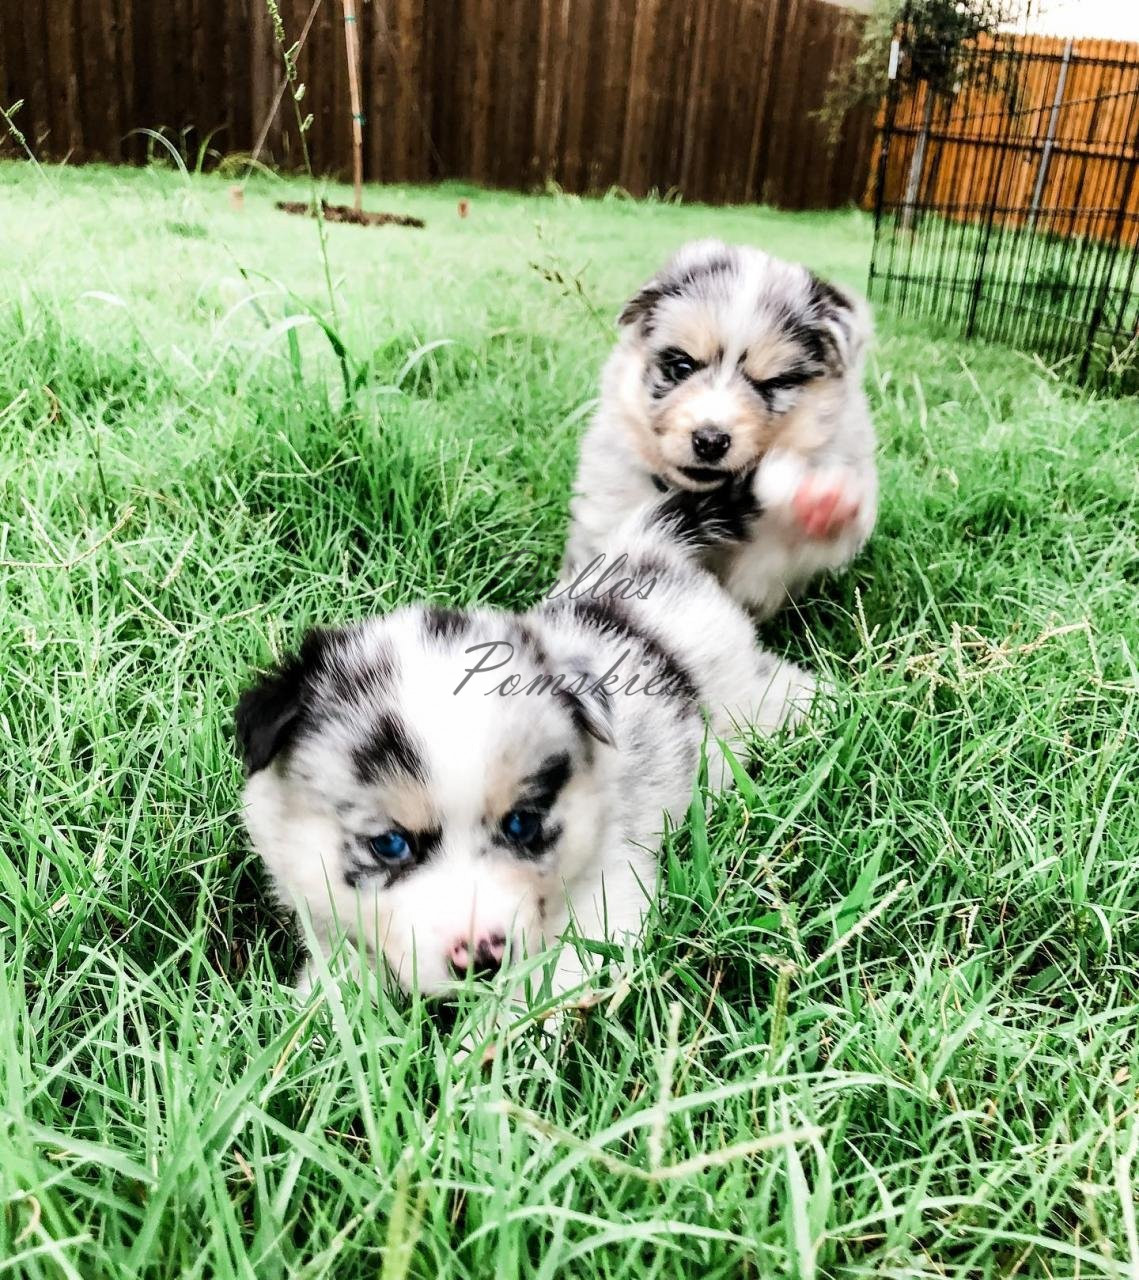 TAG, you're it! . . #pomsky #pomskies #pomskys #pomskypuppy #pomskypuppies #pomskybreeder #dallaspomskies #merle #bluemerle #merlepomsky #husky #pomeranian #dogsofinstagram #dogsofig #puppies #puppiesofinstgram #dallas #tx #texas #merlepuppy #blueeyes #blueeyedpuppy #cuddle #puppiesforsale #pomskypuppiesforsale TAG, you're it! . . #pomsky #pomskies #pomskys #pomskypuppy #pomskypuppies #pomskybreeder #dallaspomskies #merle #bluemerle #merlepomsky #husky #pomeranian #dogsofinstagram #dogsofig #puppies #puppiesofinstgram #dallas #tx #texas #merlepuppy #blueeyes #blueeyedpuppy #cuddle #puppiesforsale #pomskypuppiesforsale 118948242 3133303330056299 7690187761298988976 n